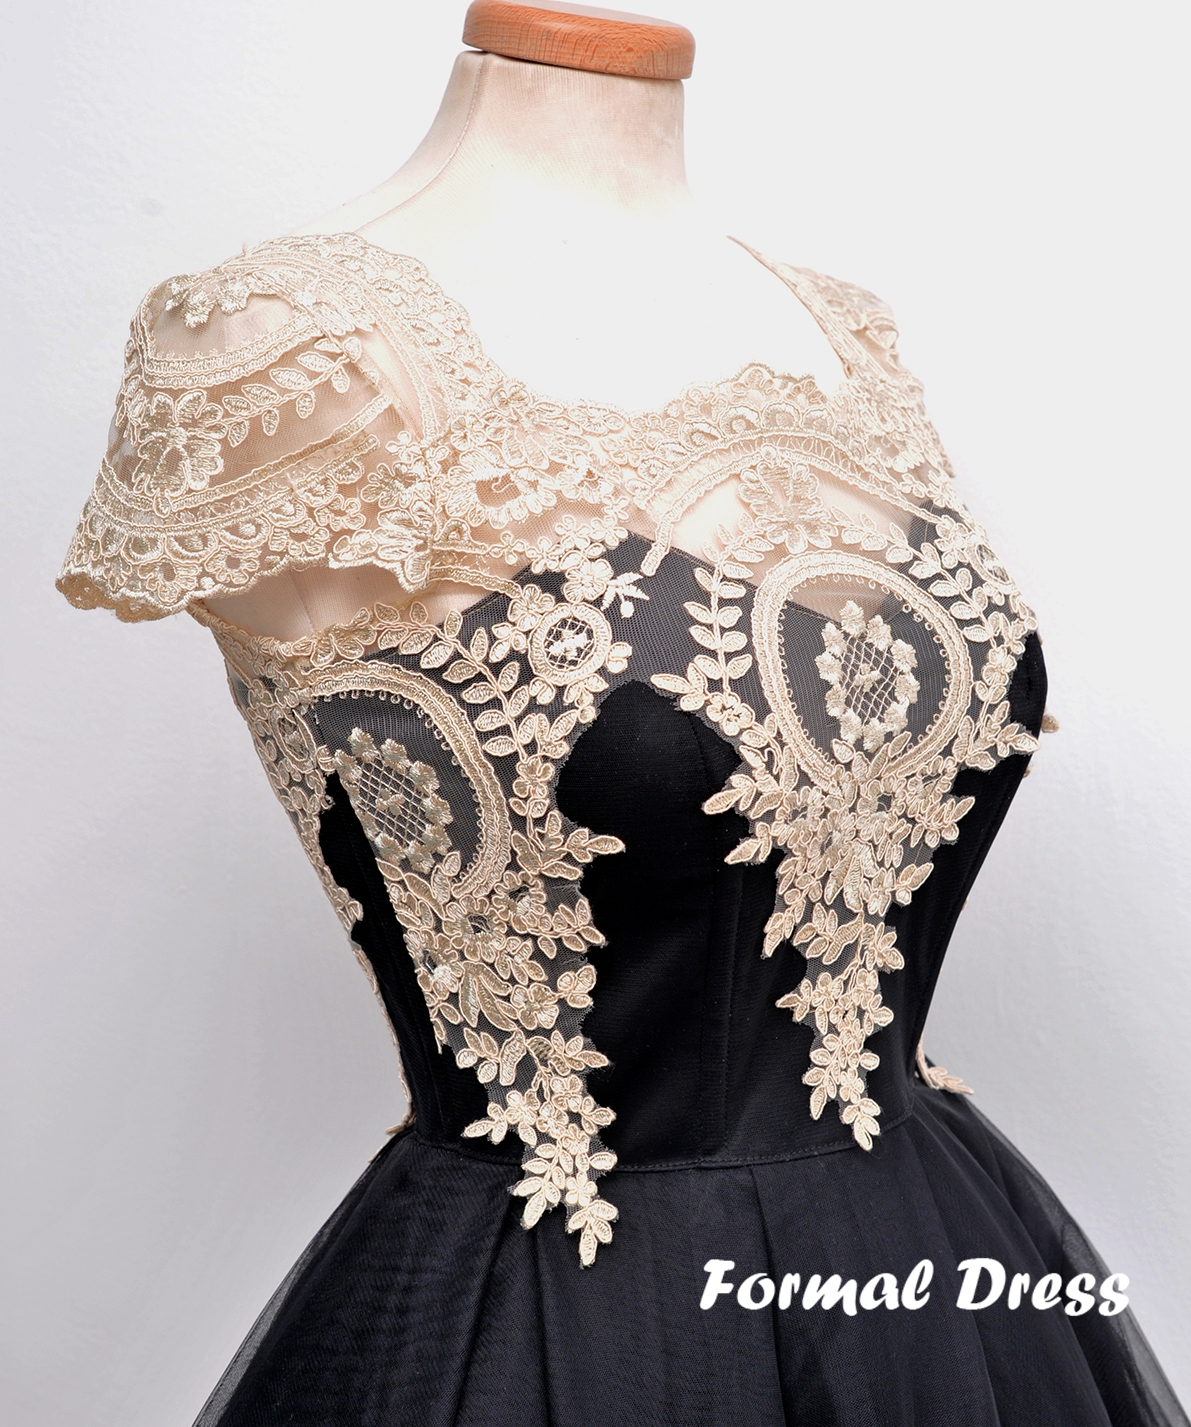 b6f9a2fd39 ... Retro Black Tulle Lace Short Prom Dresses